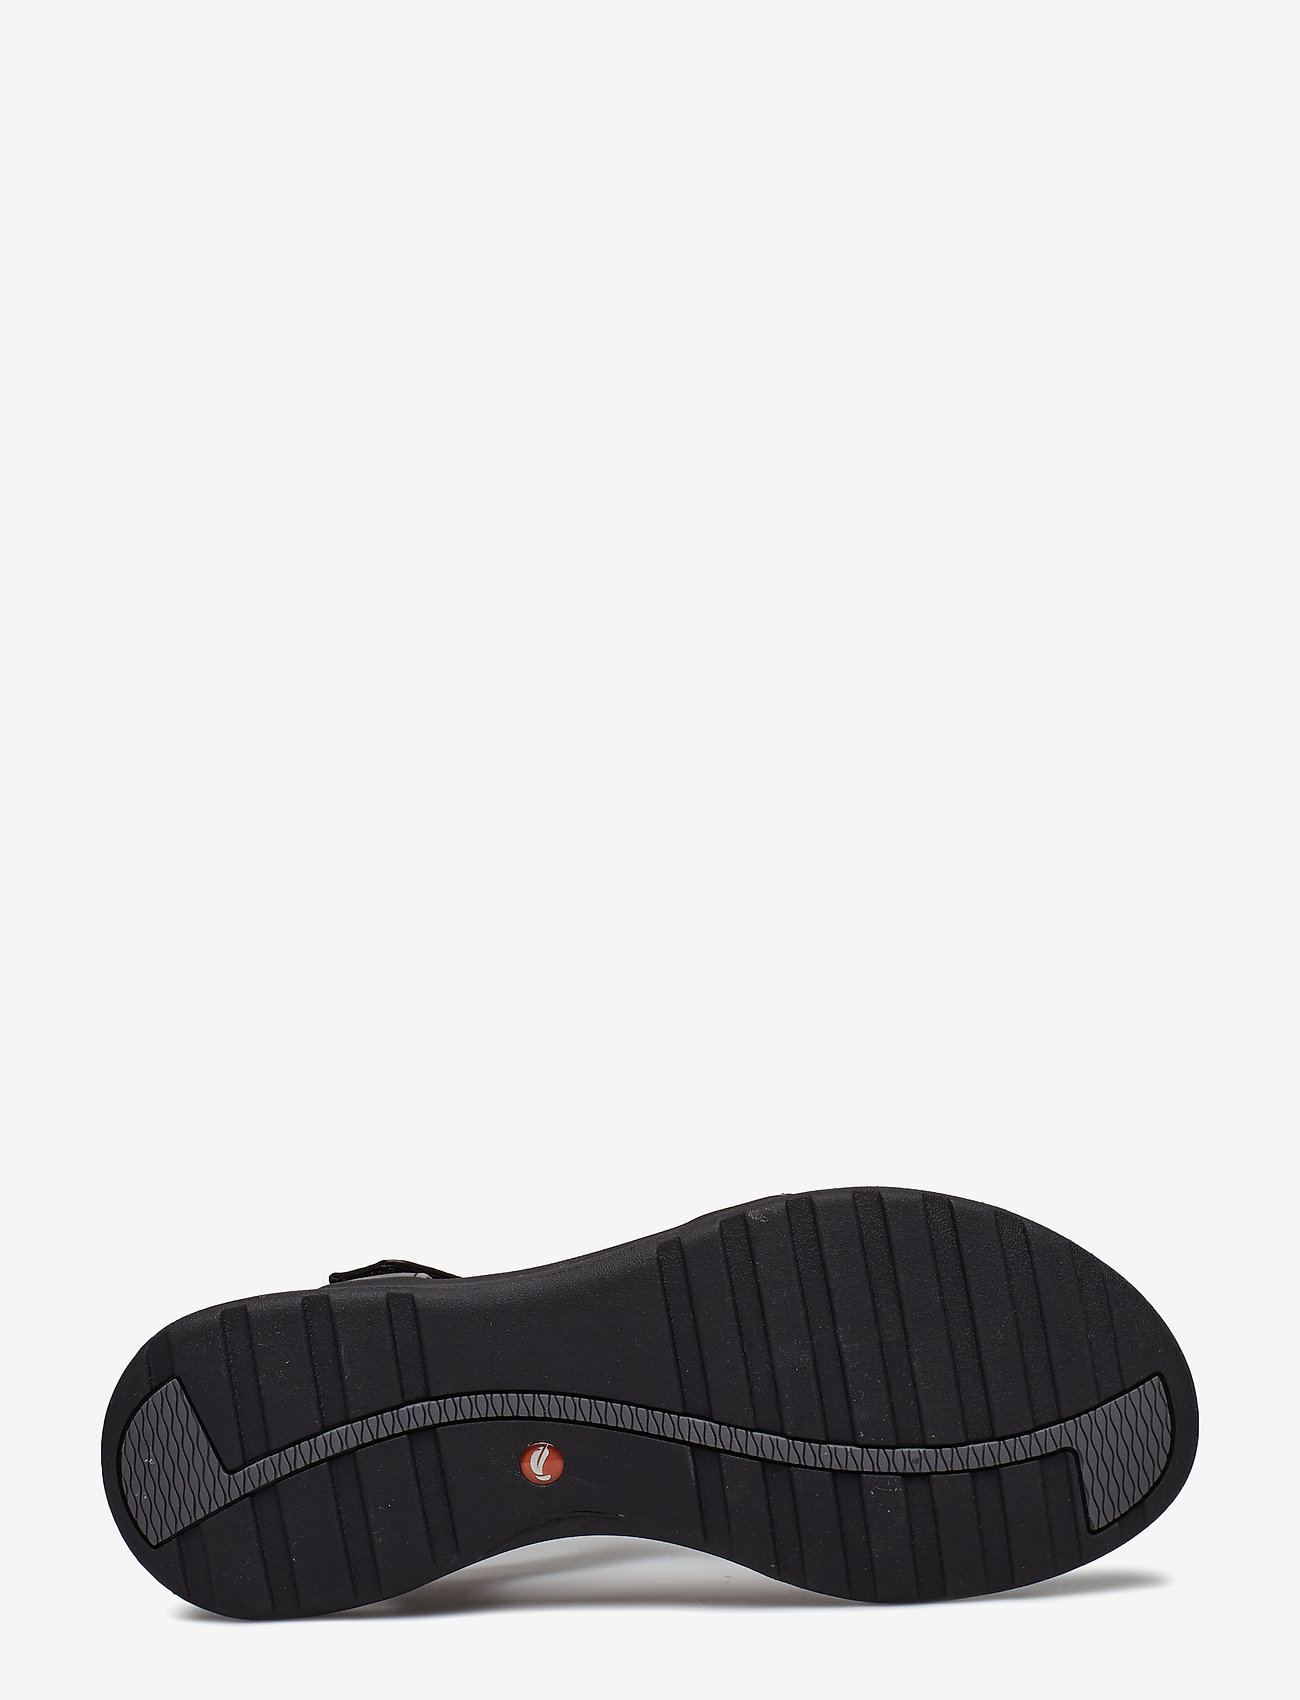 Un Adorn Vibe (Black Leather) (49.98 €) - Clarks mGyqH